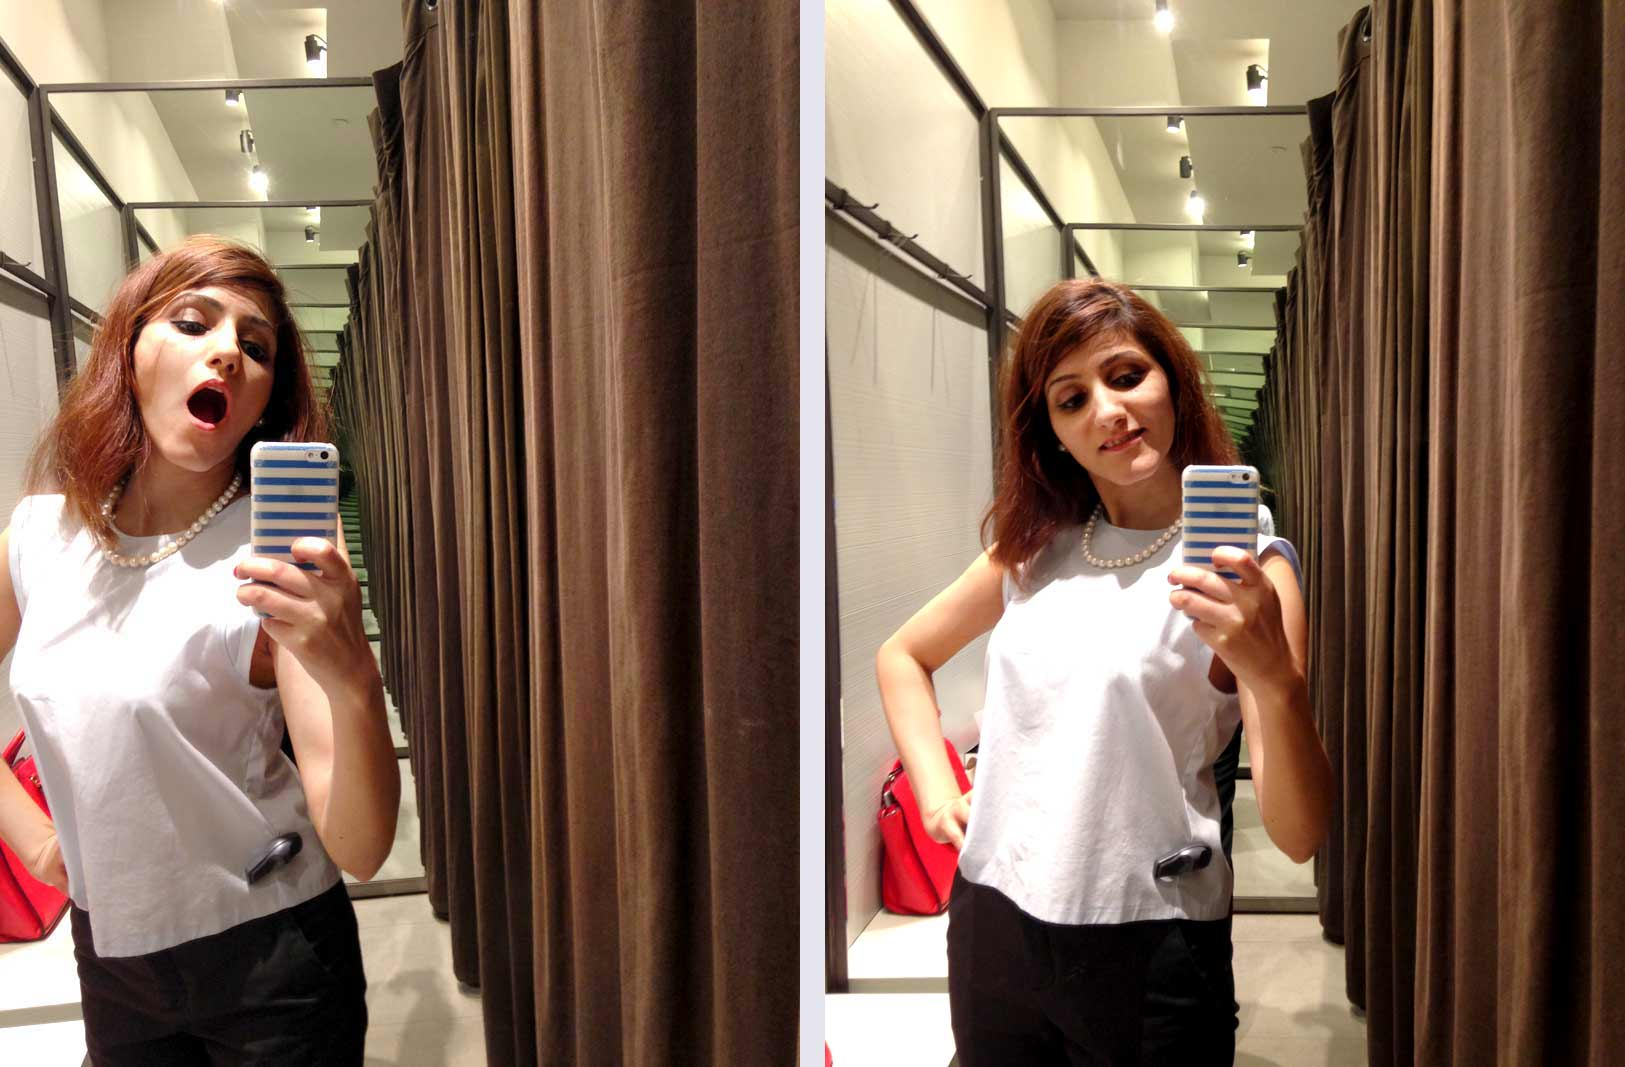 shilpa-ahuja-fashion-blogger-zara-spring-summer-2016-collection-review-changing-room-selfie